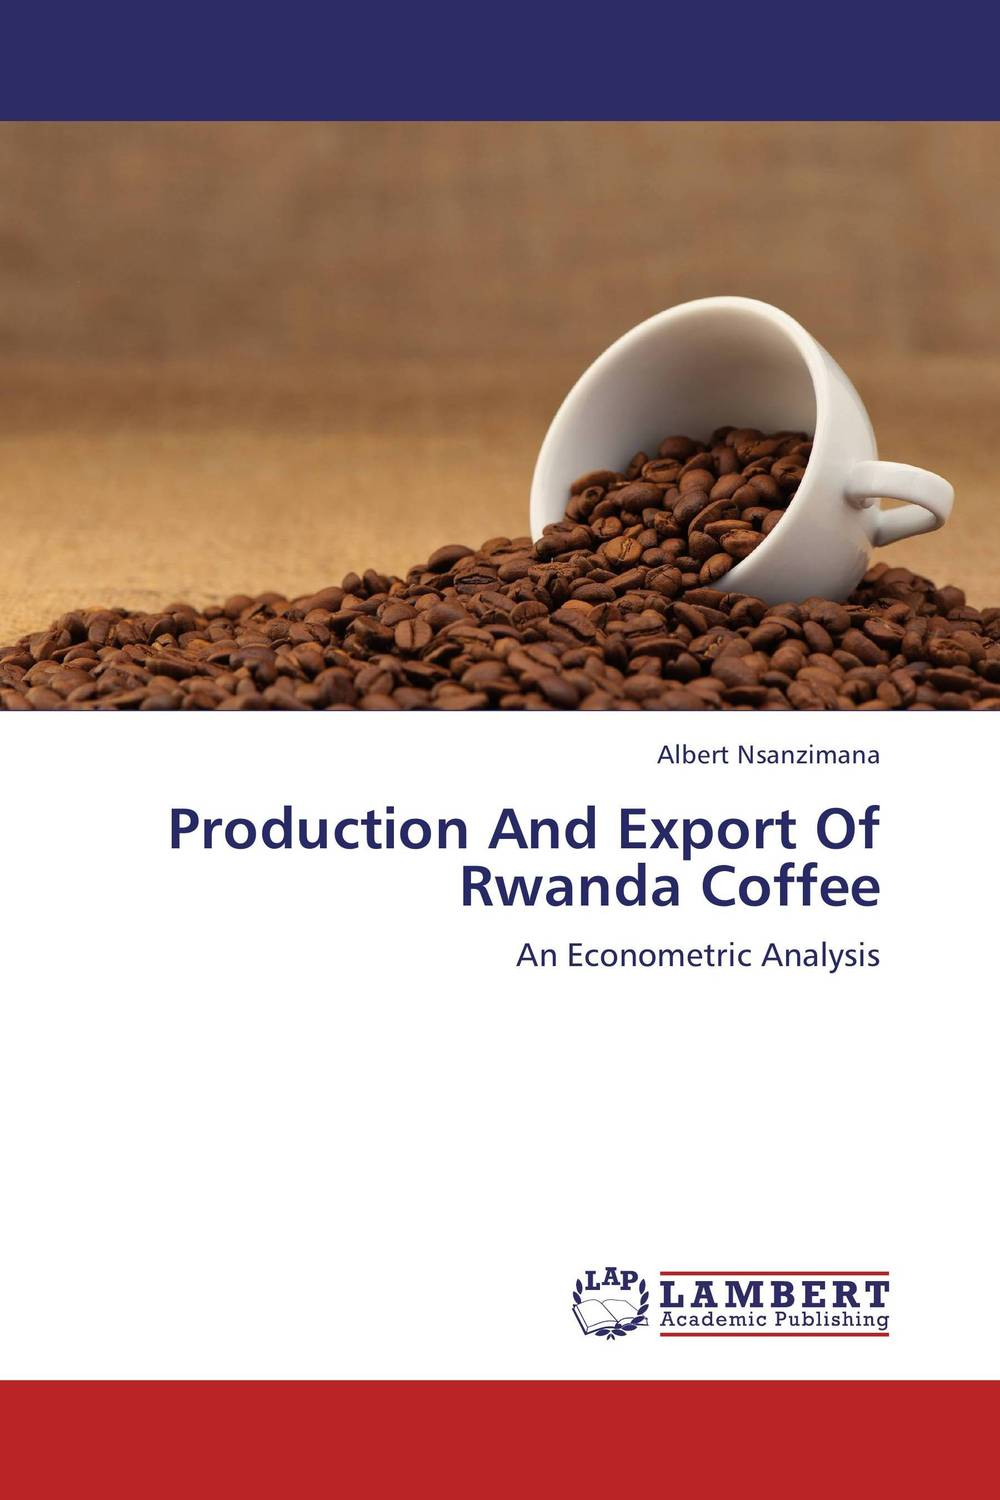 Production And Export Of Rwanda Coffee psychiatric disorders in postpartum period